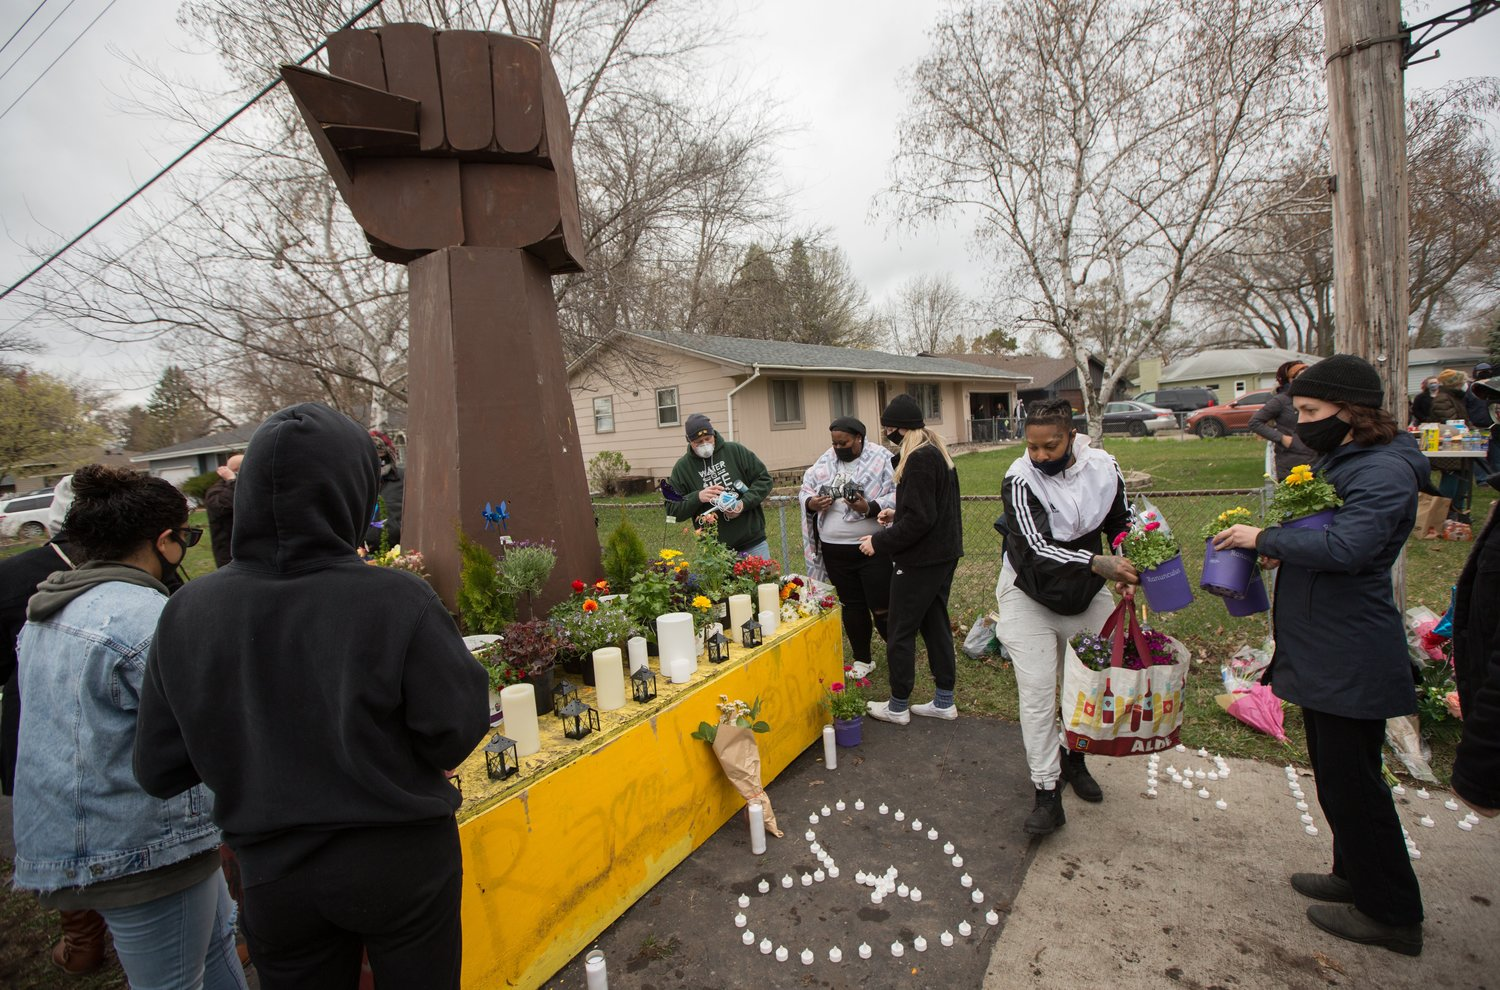 Family members, friends and other members of the community gather at a memorial put up at the site in Brooklyn Center, Minn., April 12, where Daunte Wright was shot by a Brooklyn Center police officer and died April 11 during a traffic stop.